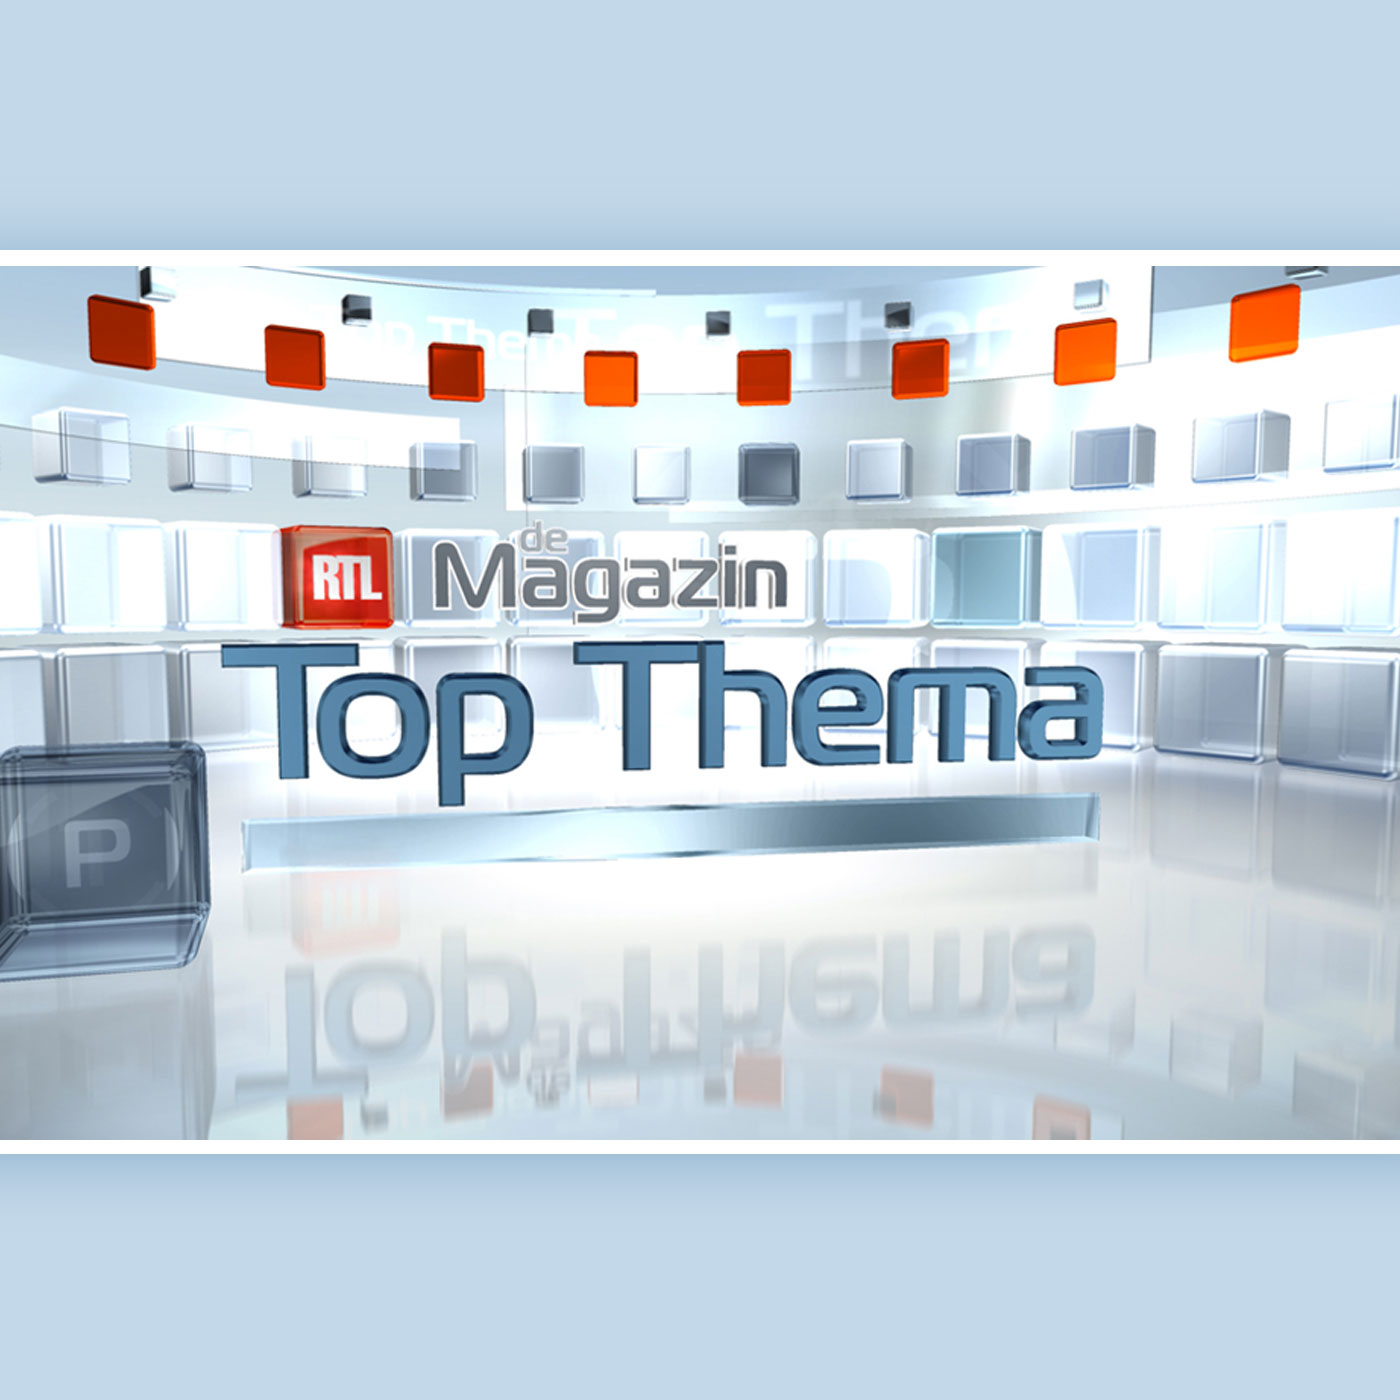 RTL- Top Thema Magazin (Large)